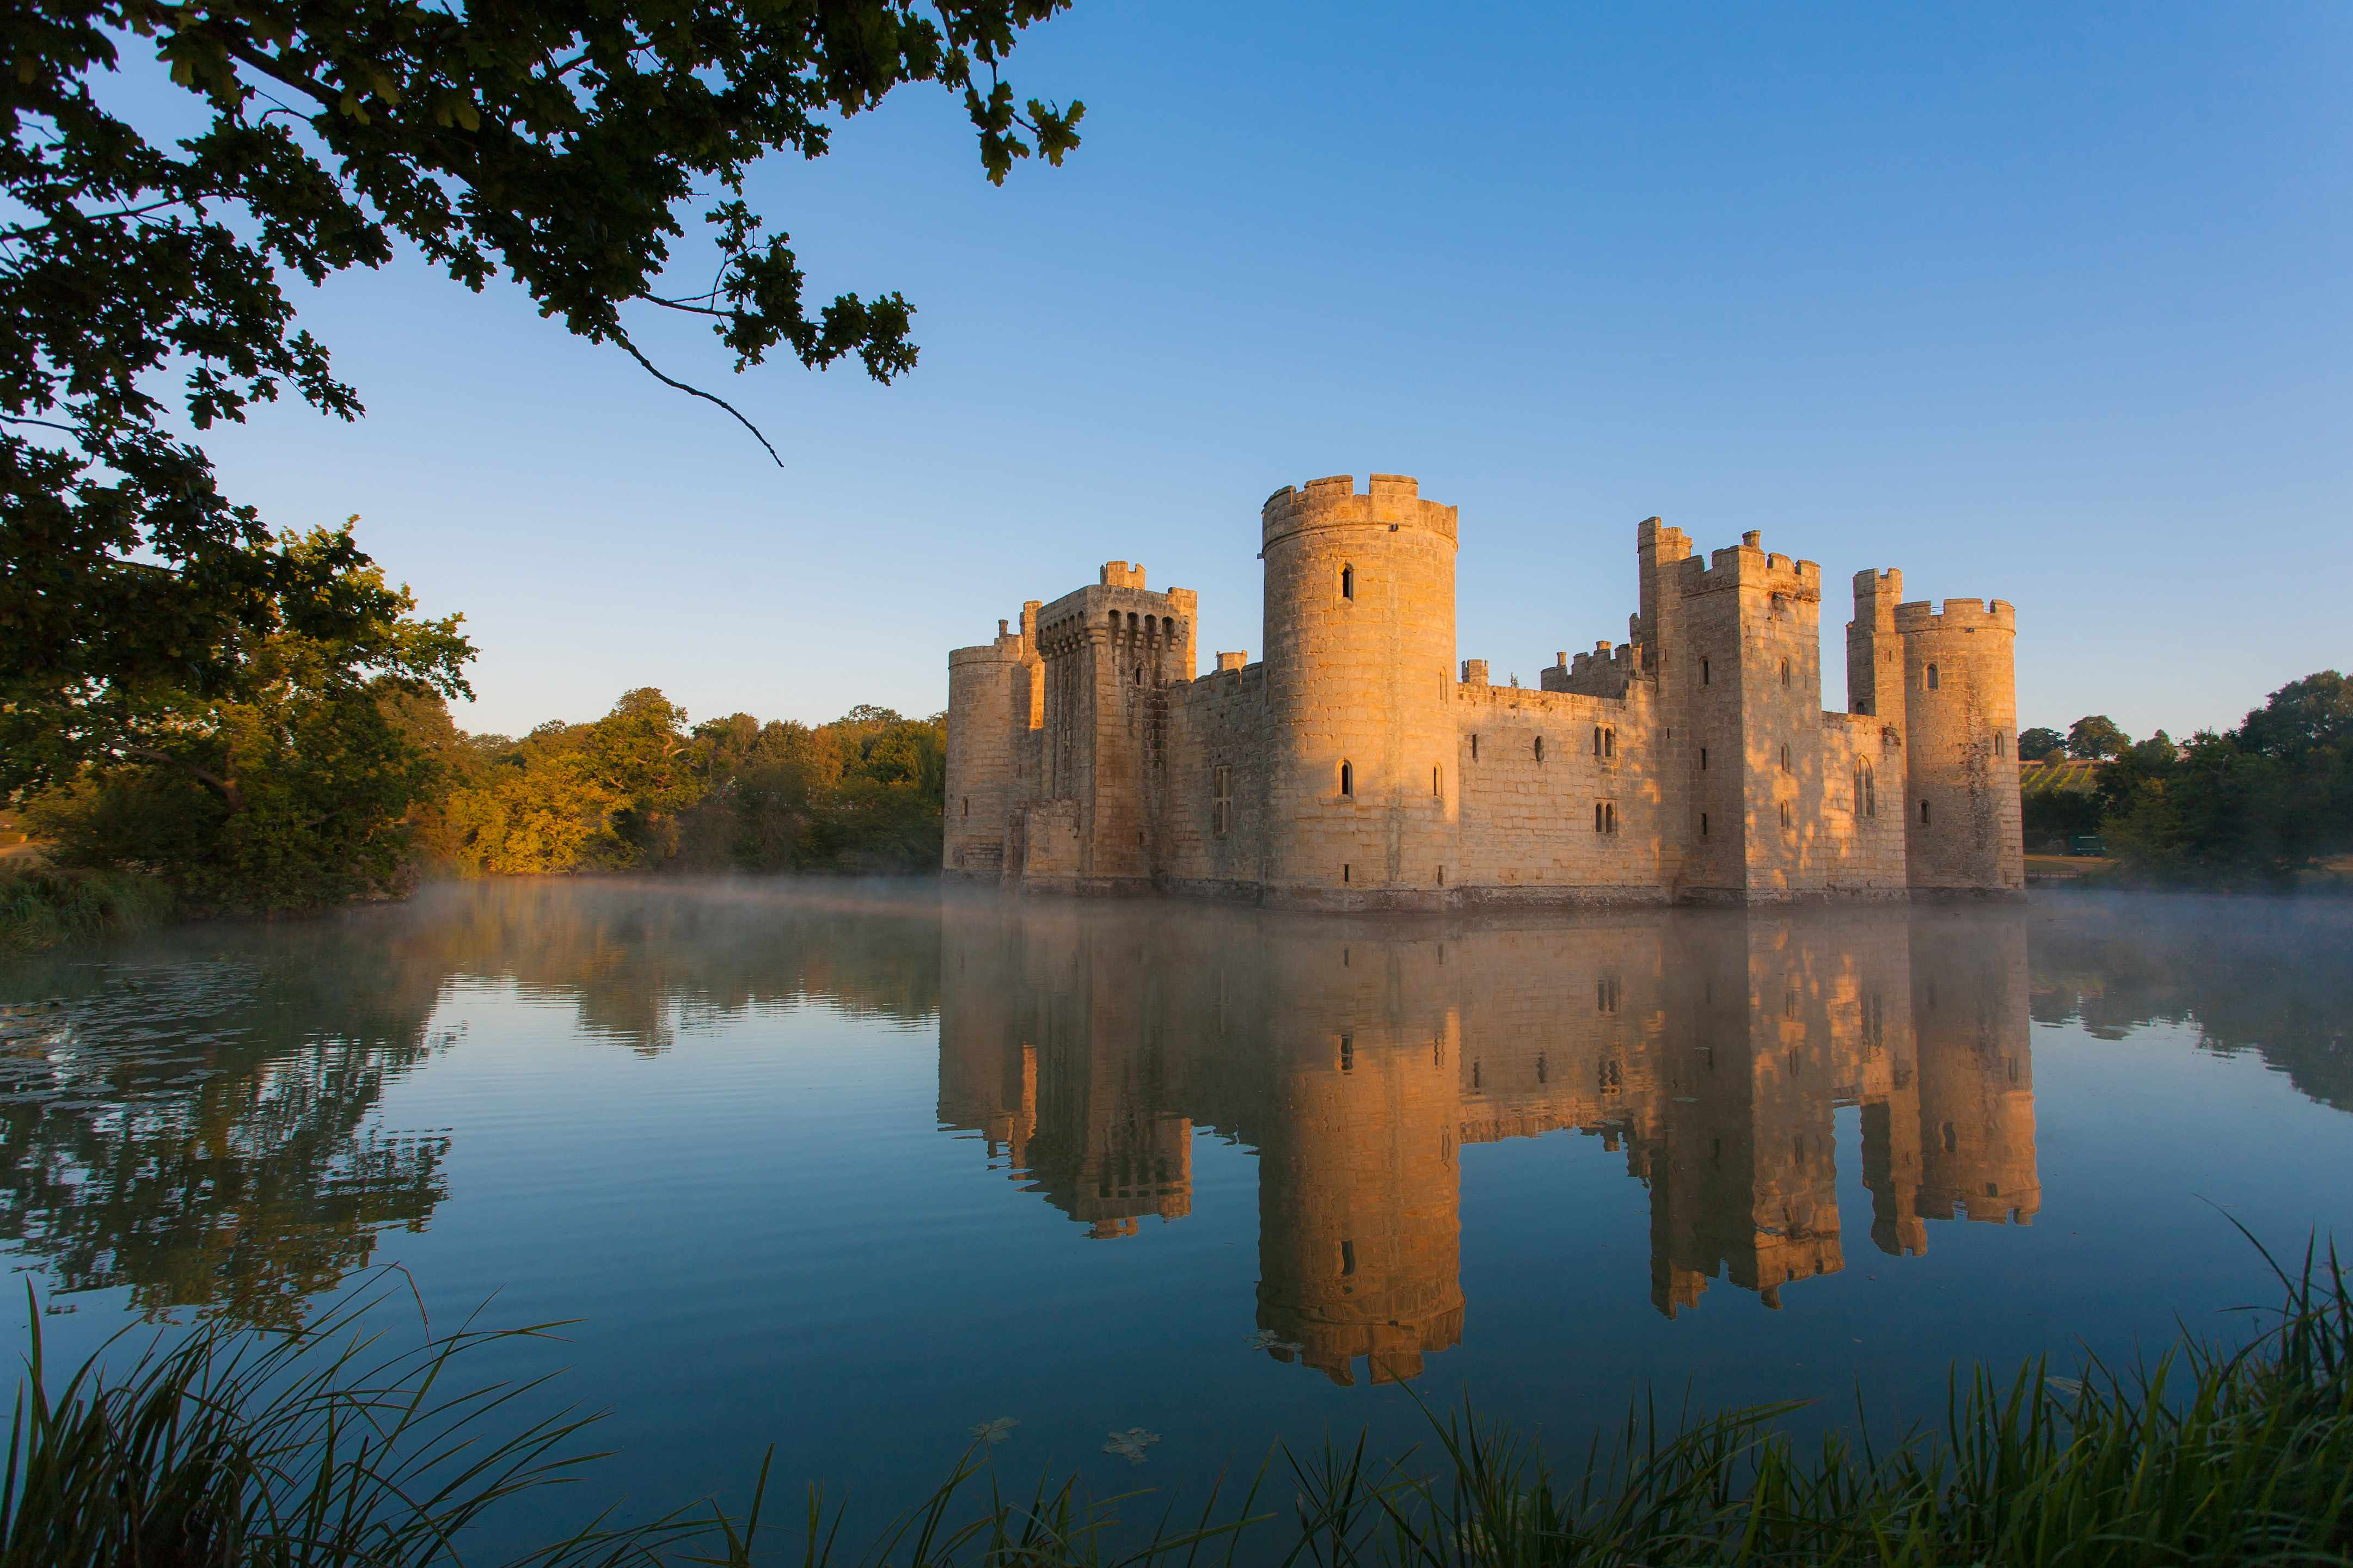 """The 14th-century Bodiam Castle, Sussex. """"All historians and students of history have to think about how the society they are studying functions,"""" says Dr Alice Taylor. (Picture by Getty Images)"""